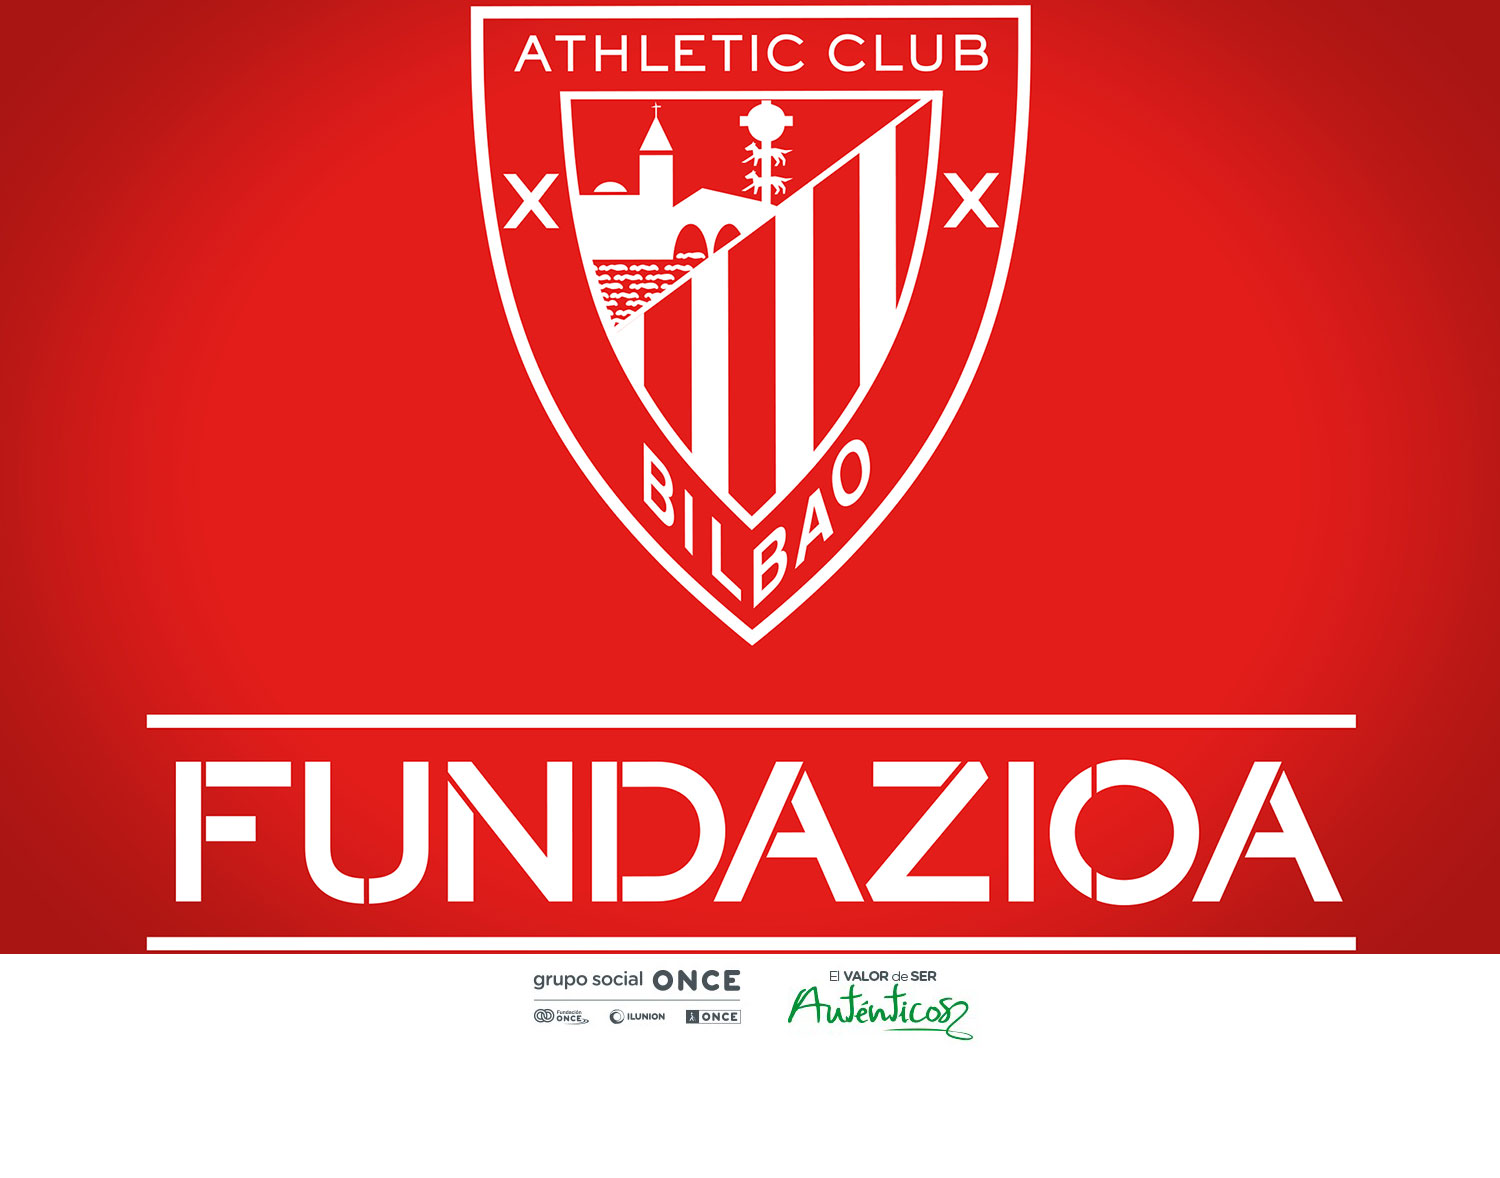 La Fondation Athletic Club nominée au Cascabel de Oro